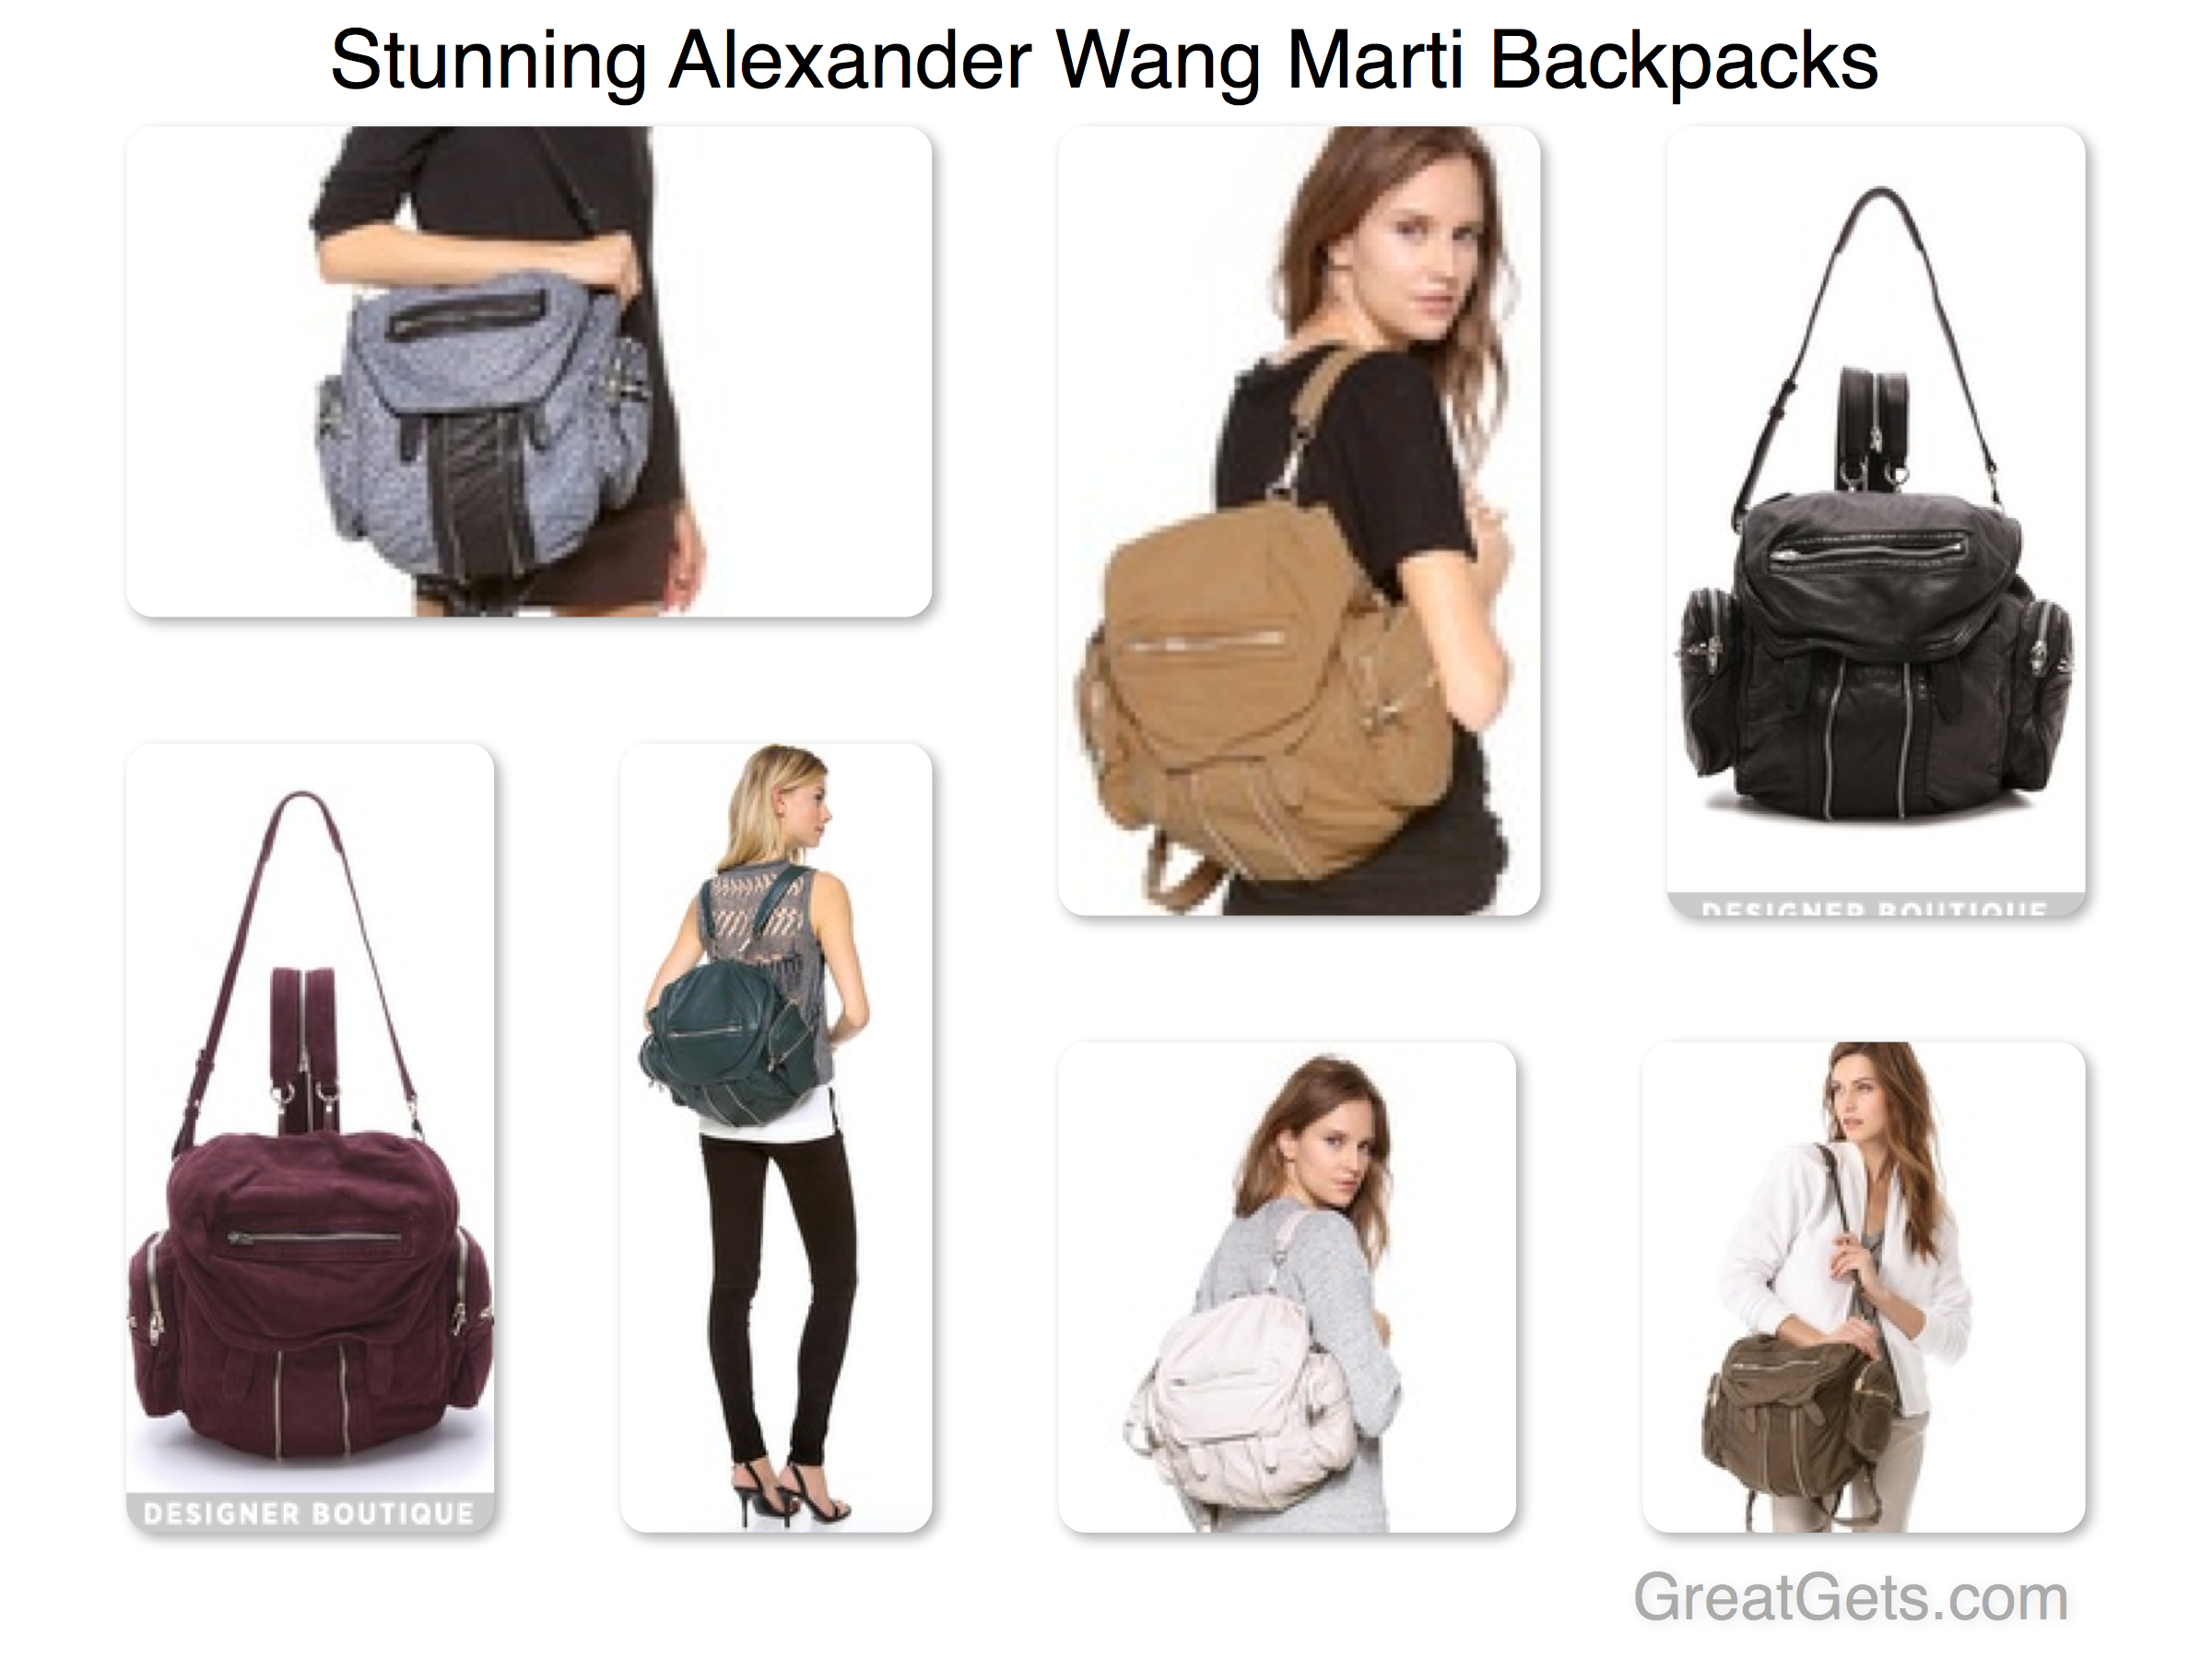 Stunning Alexander Wang Marti Backpack